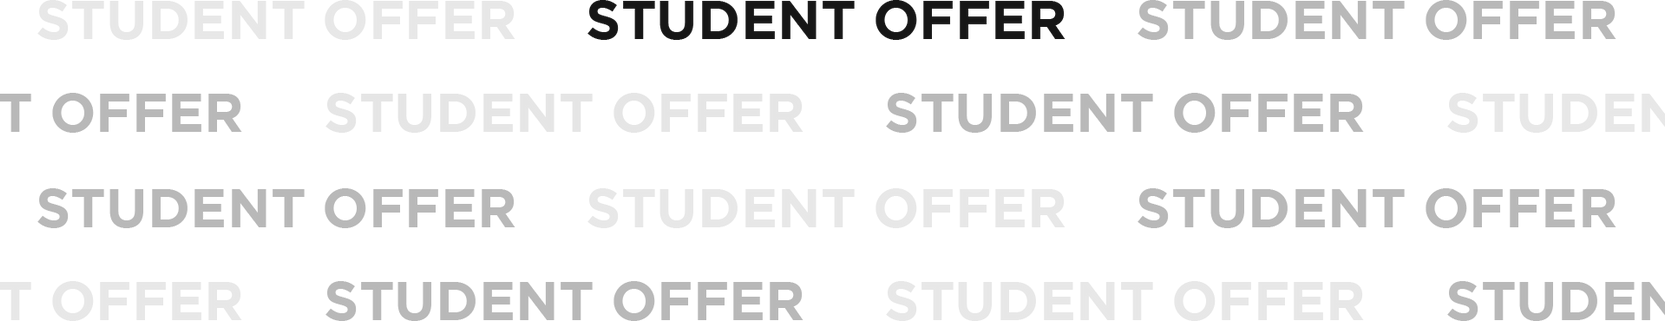 student offer text art.png